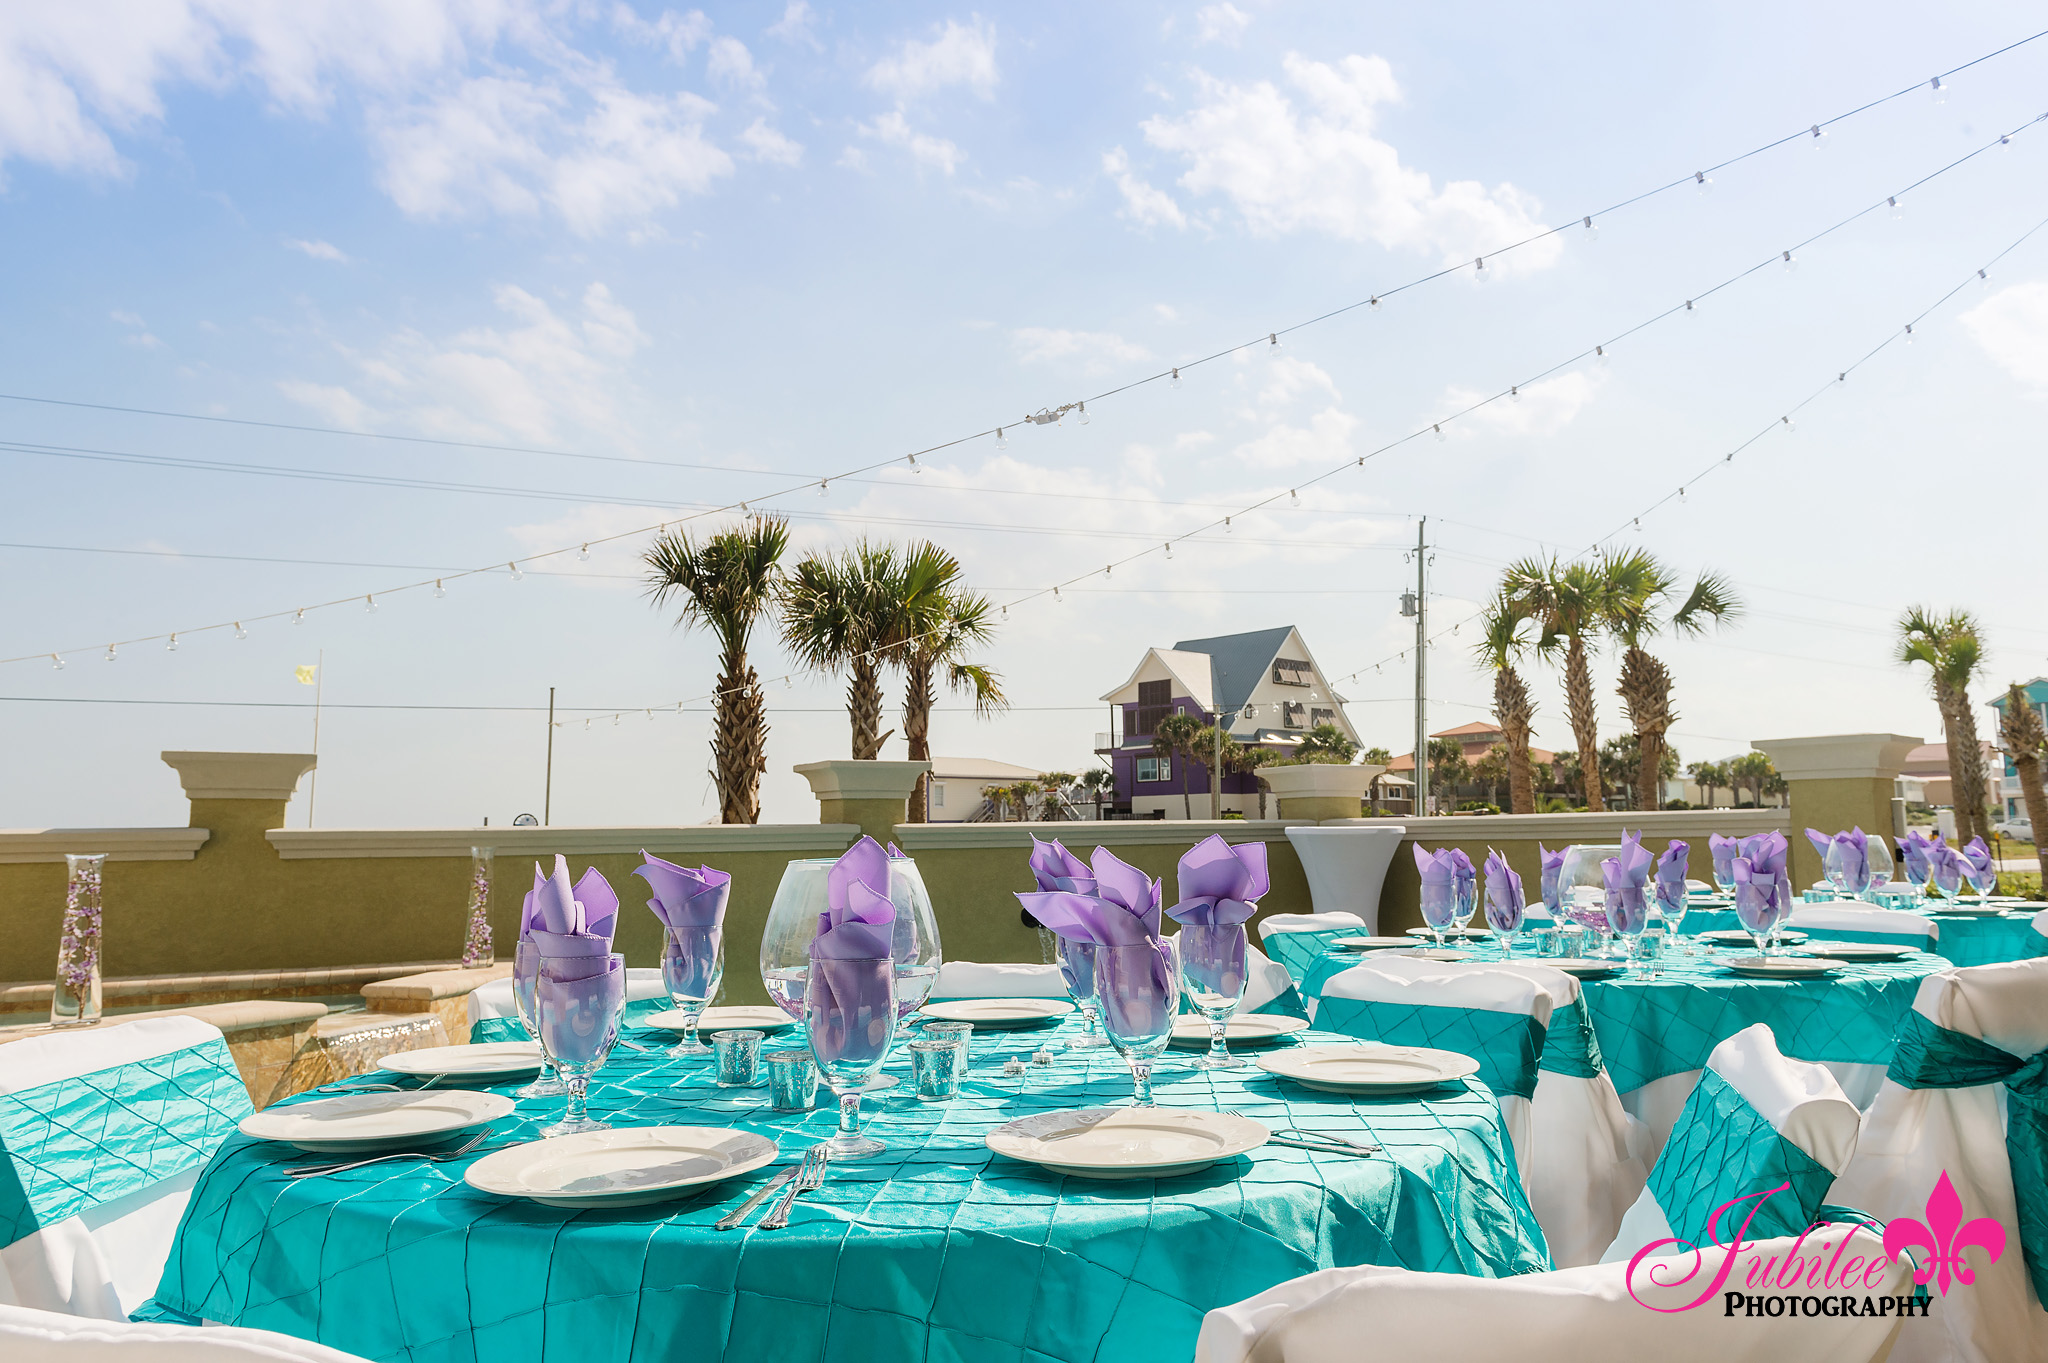 30A_Wedding_Photographer_7147